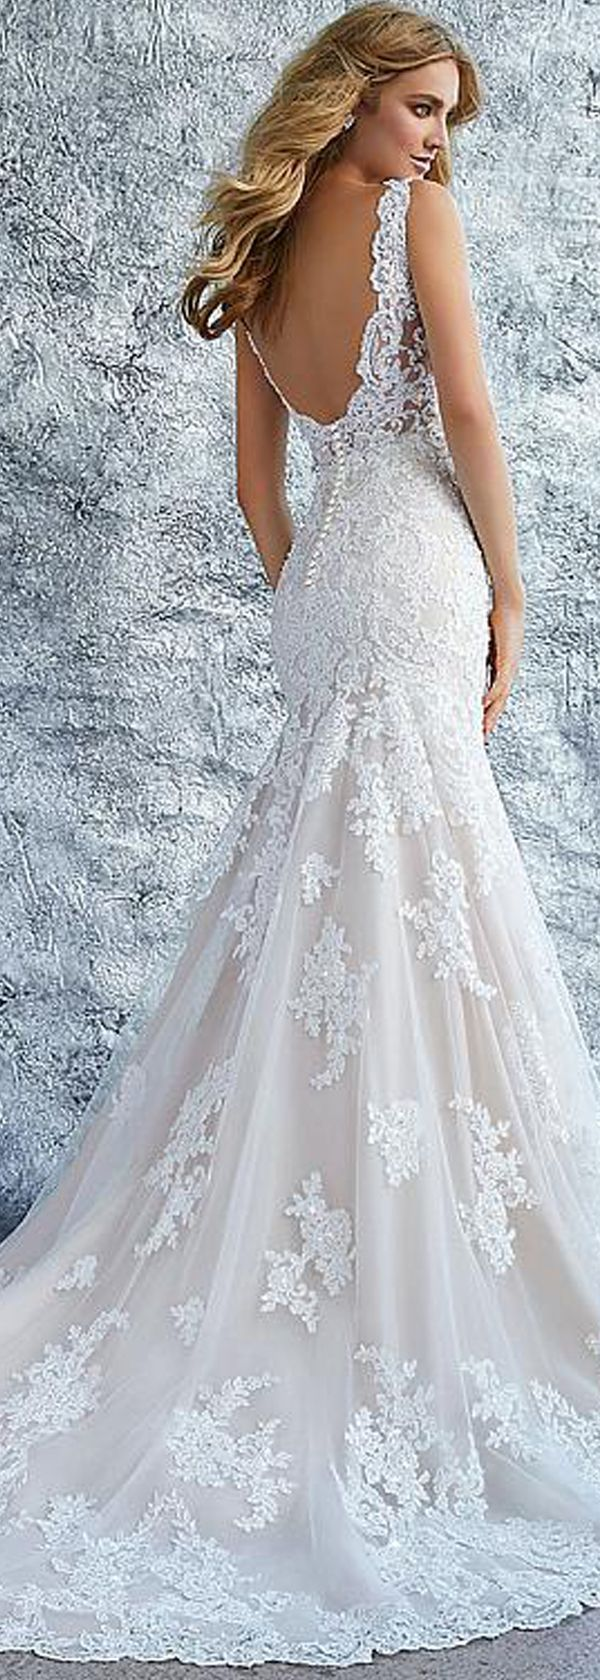 Attractive Hillbilly Wedding Dress Vignette - Wedding Dress - googeb.com